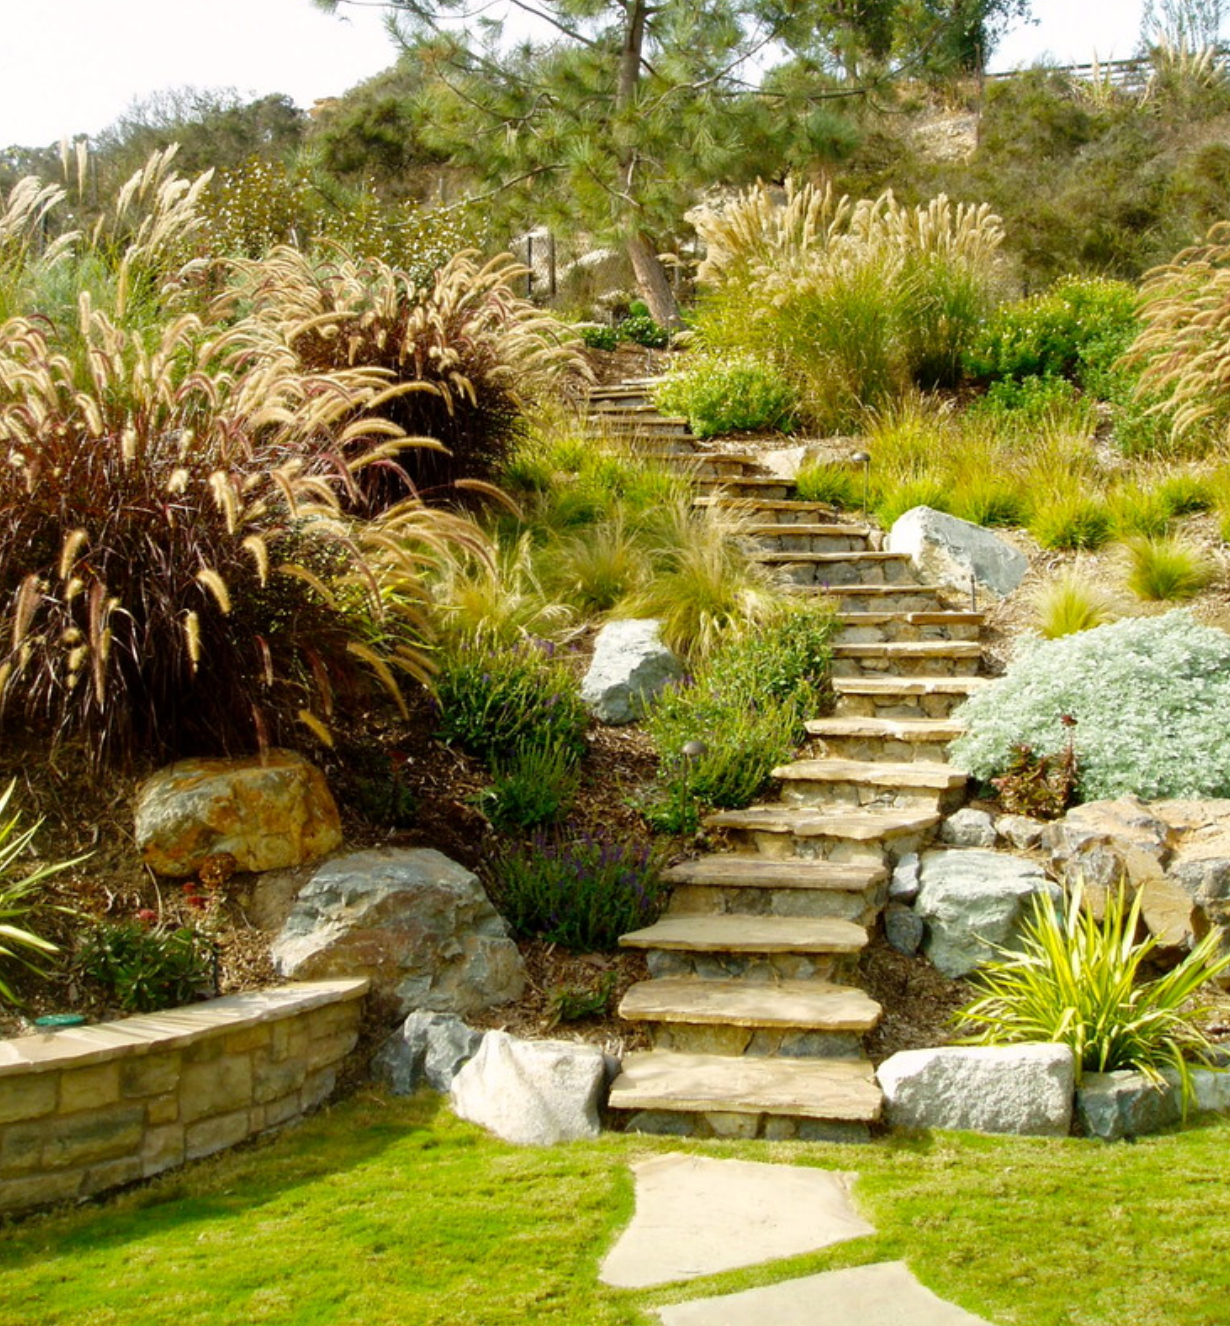 flagstone stairs | Gardens that Rawk | Pinterest | Flagstone and Gardens